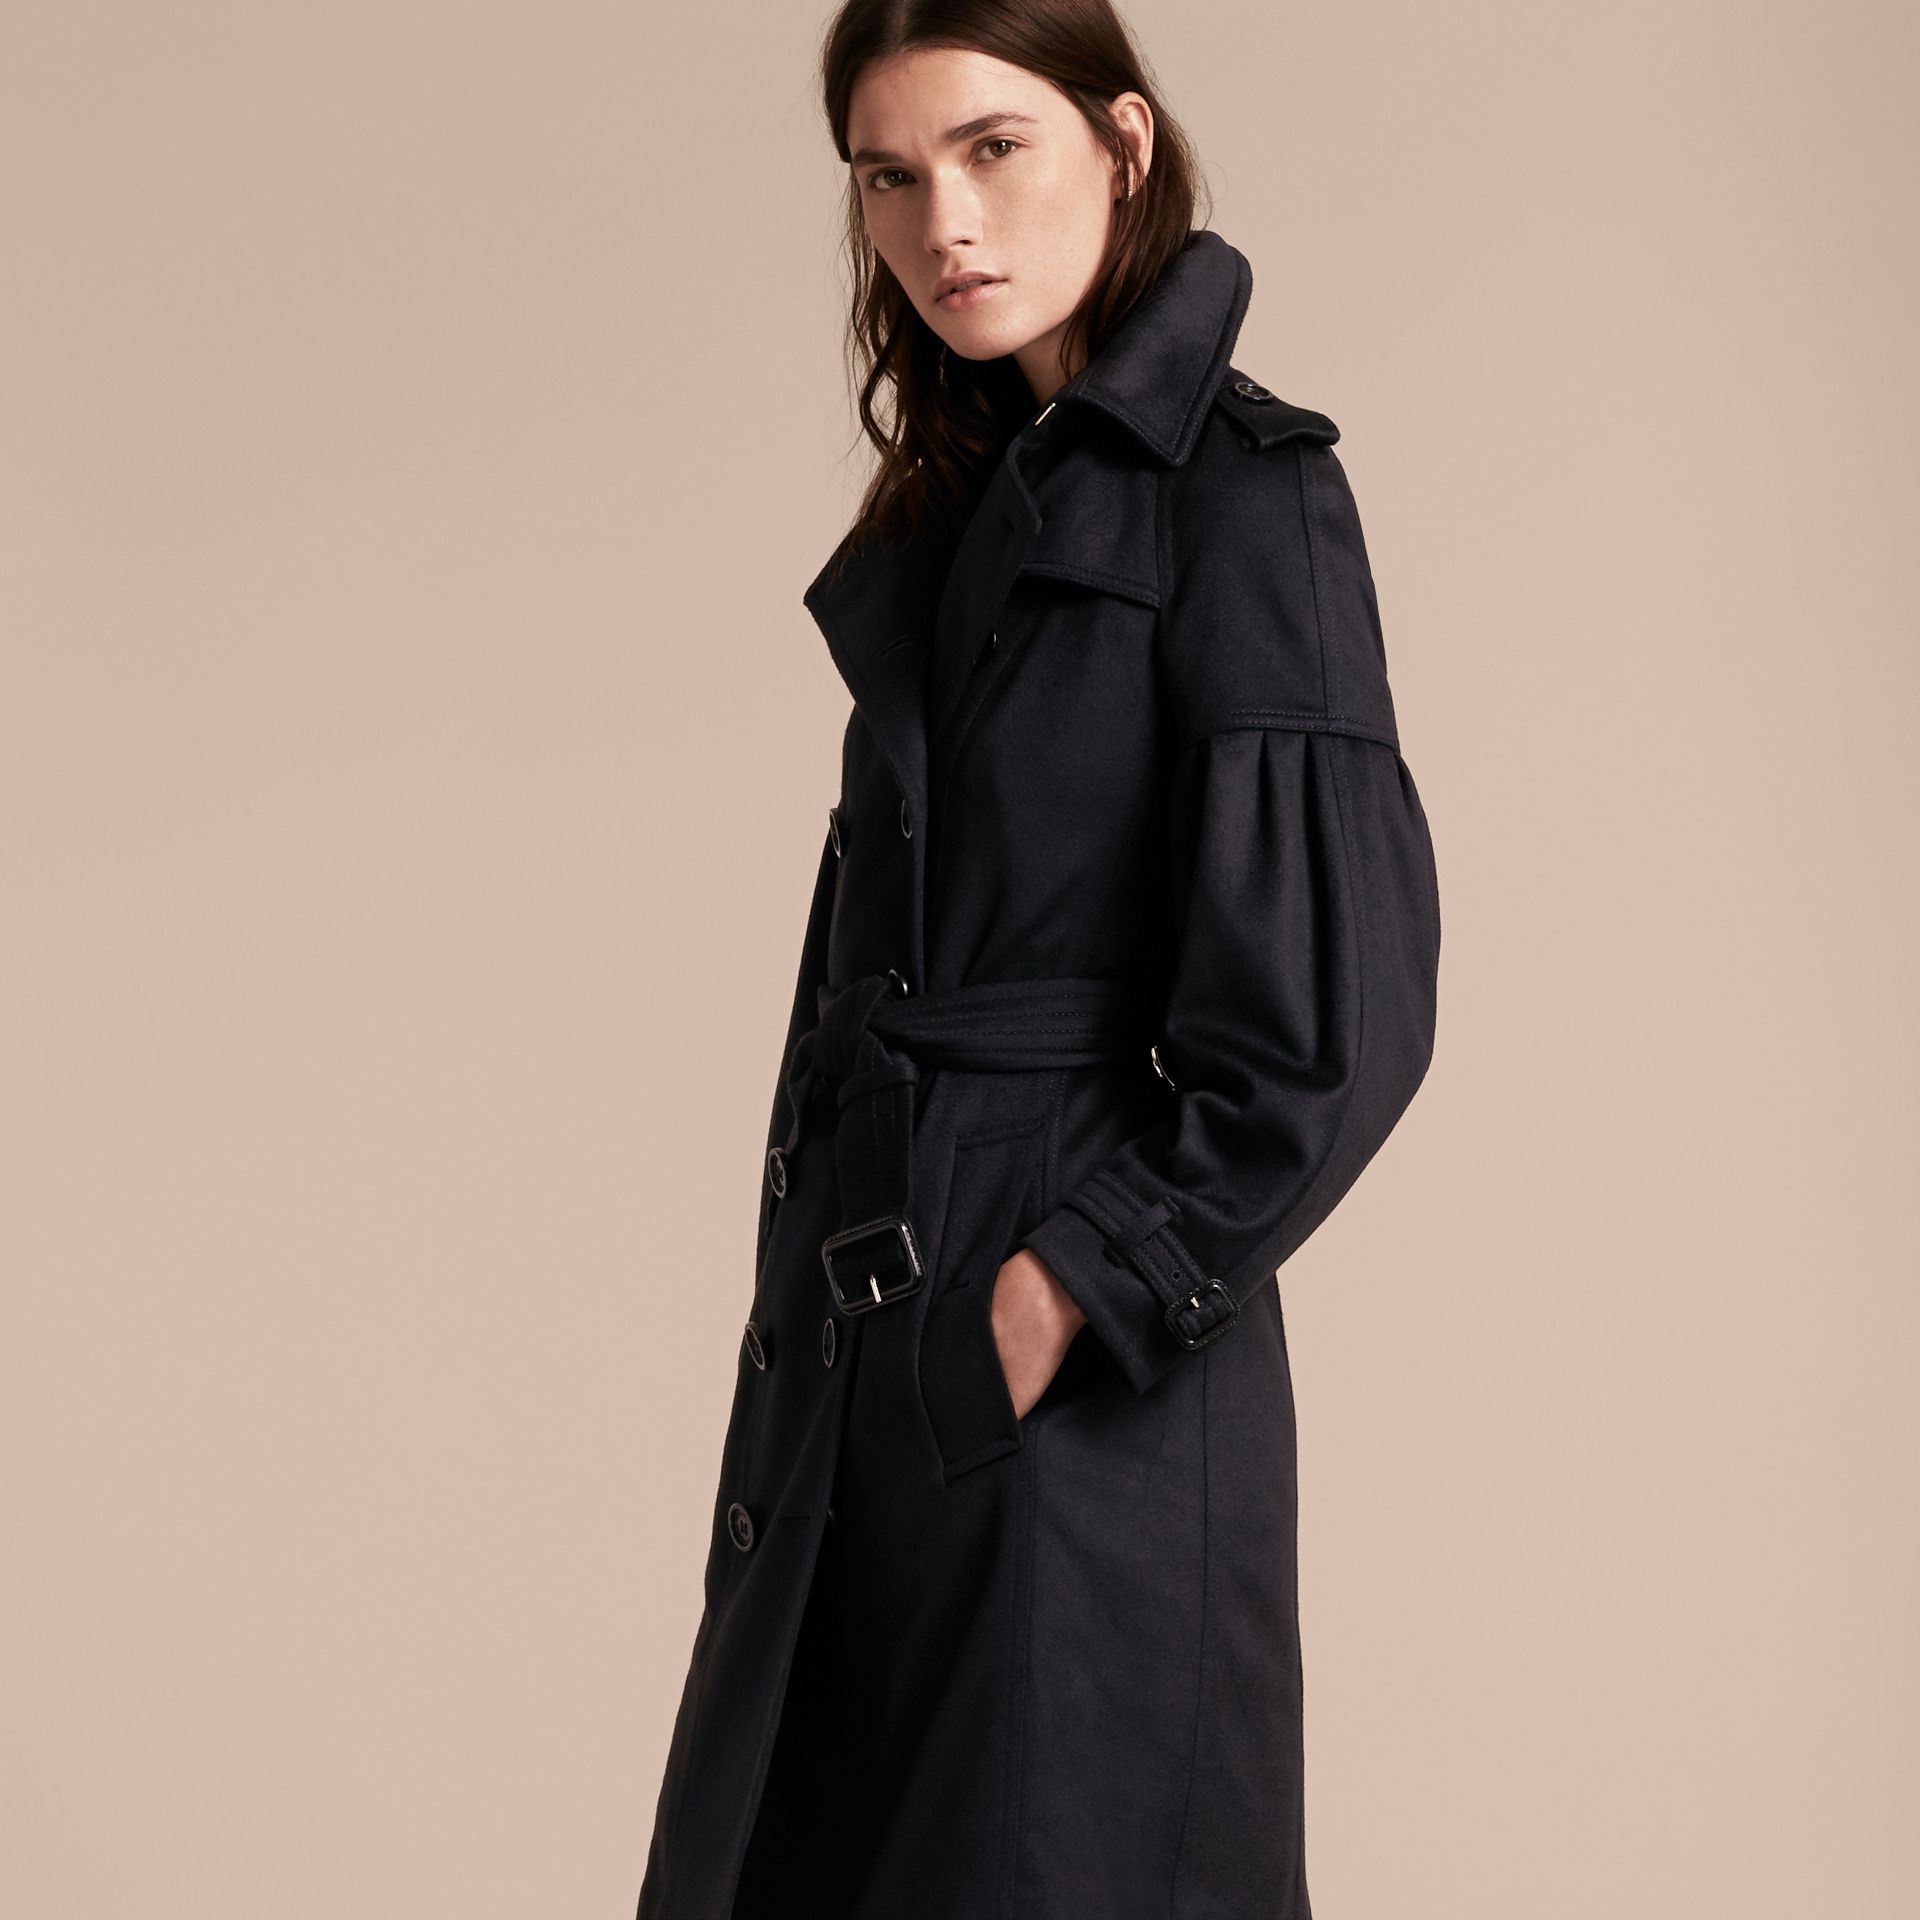 Navy Cashmere Trench Coat with Puff Sleeves Navy - gallery image 7